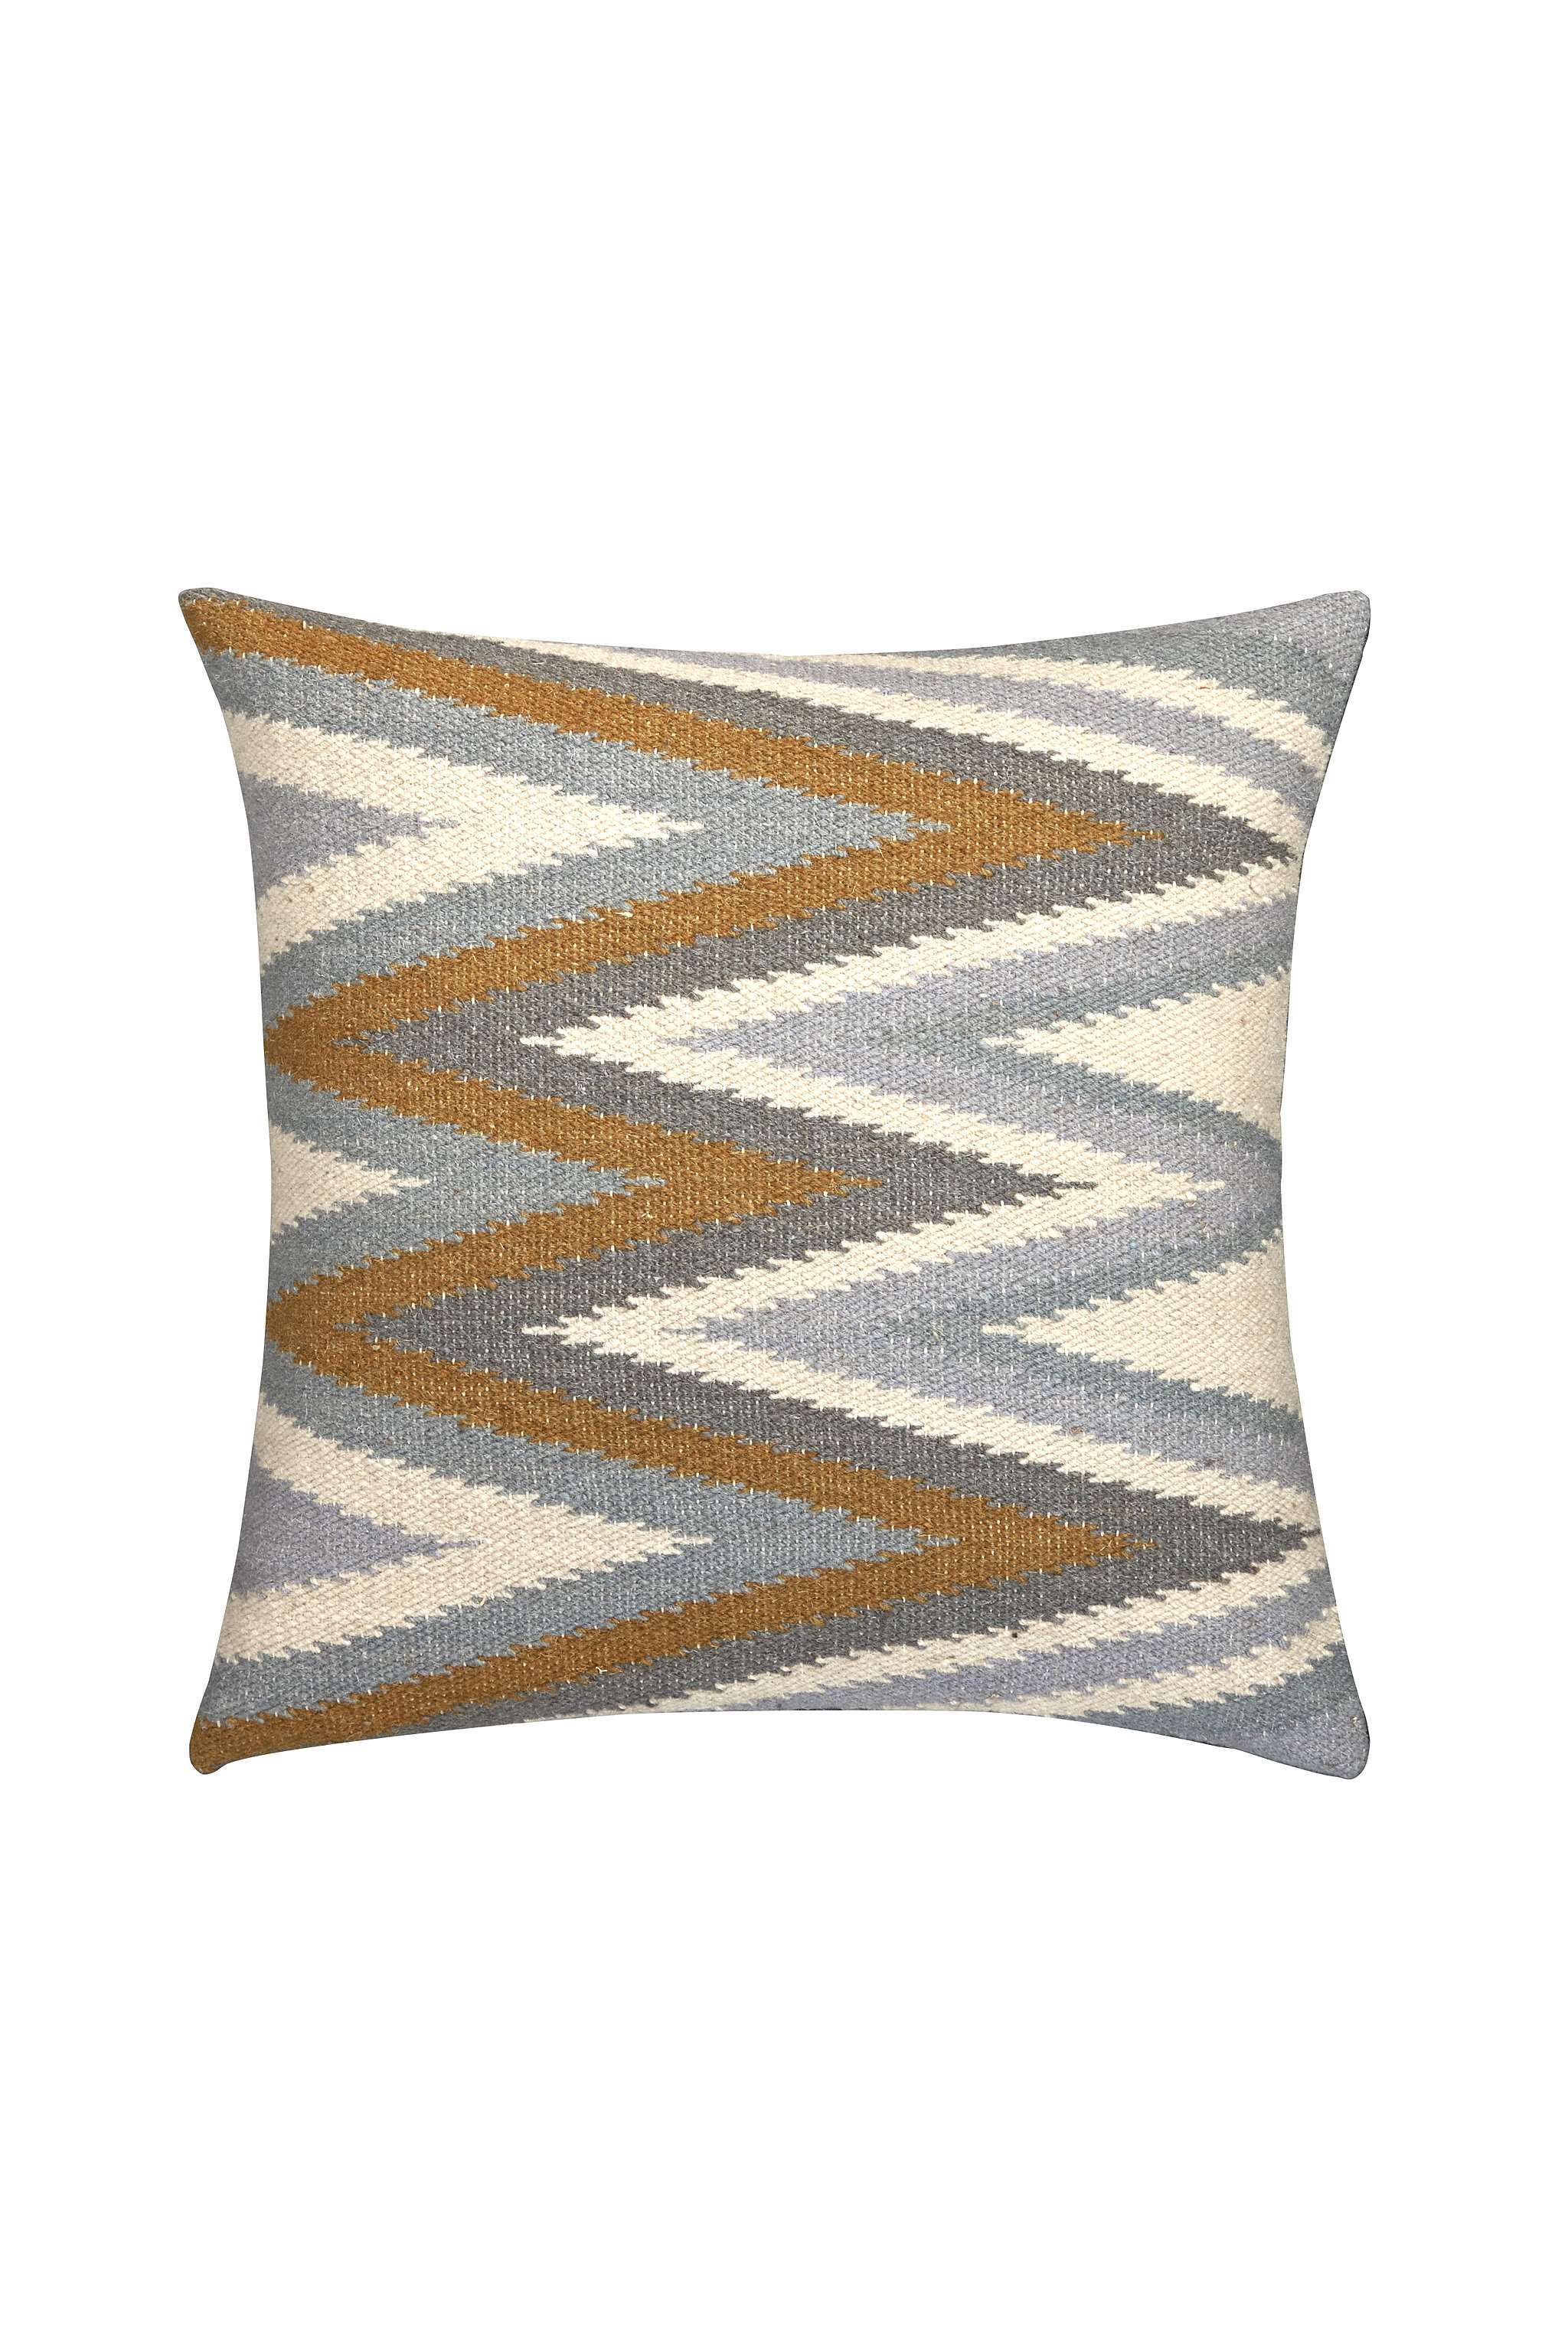 Groove-Wool-Pillow-100.jpg